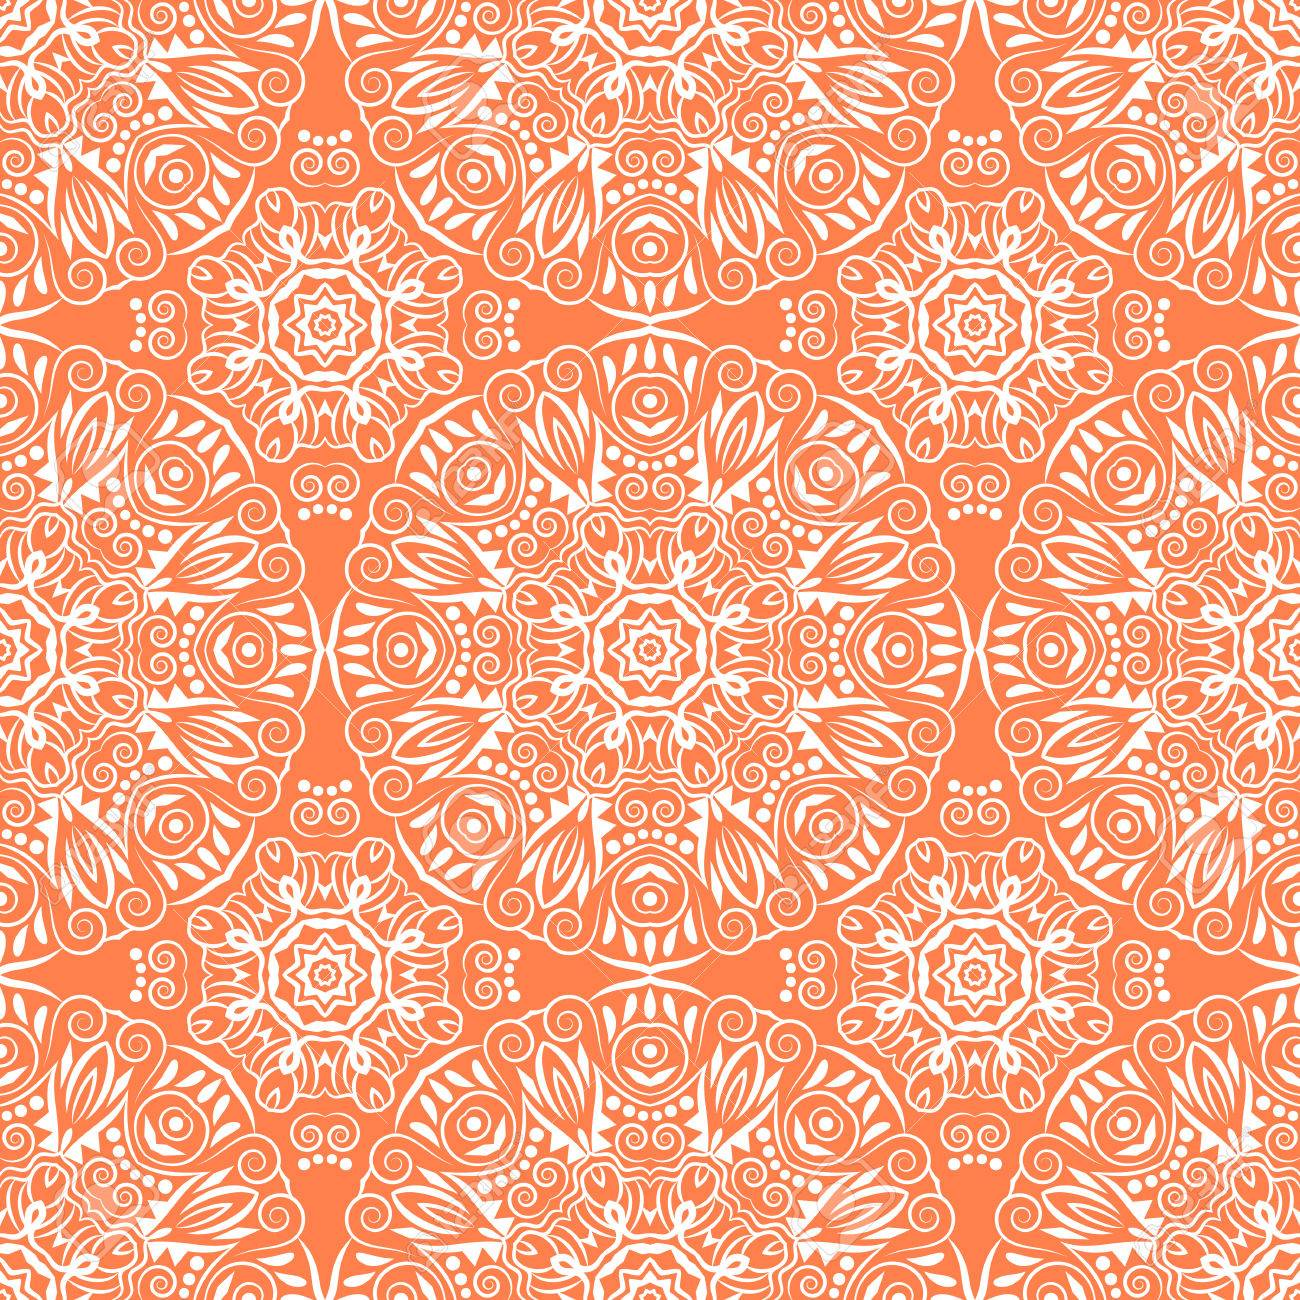 mandala seamless pattern bohemian style vintage background royalty free cliparts vectors and stock illustration image 60552774 mandala seamless pattern bohemian style vintage background